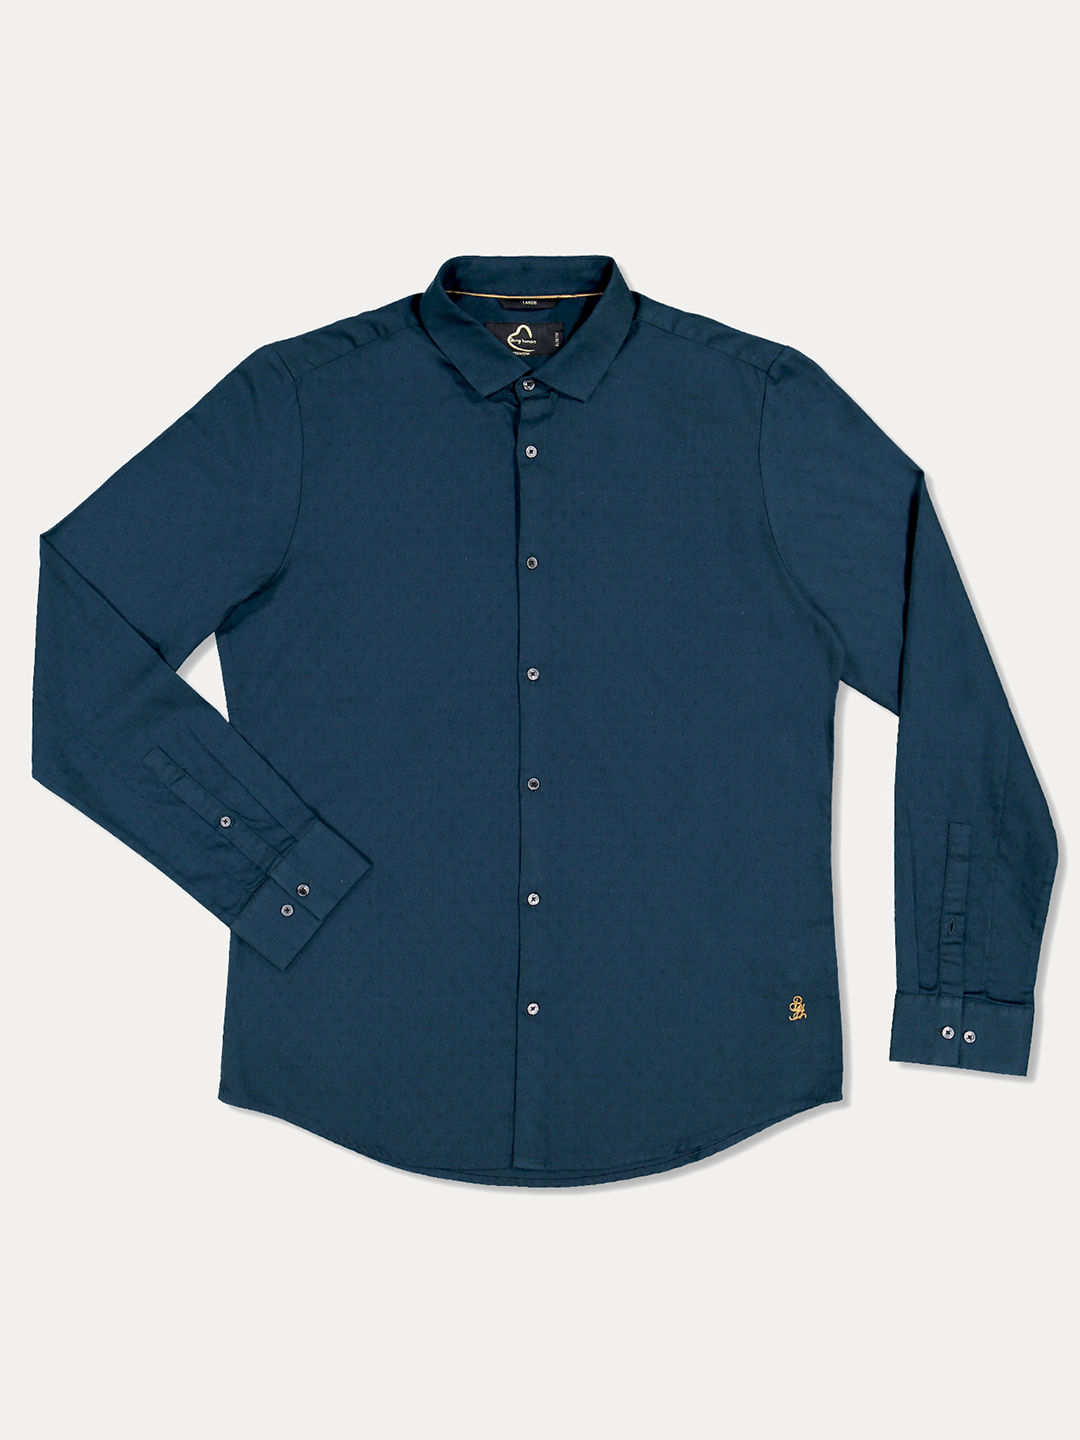 BOTTLE GREEN SOLID CASUAL SHIRT